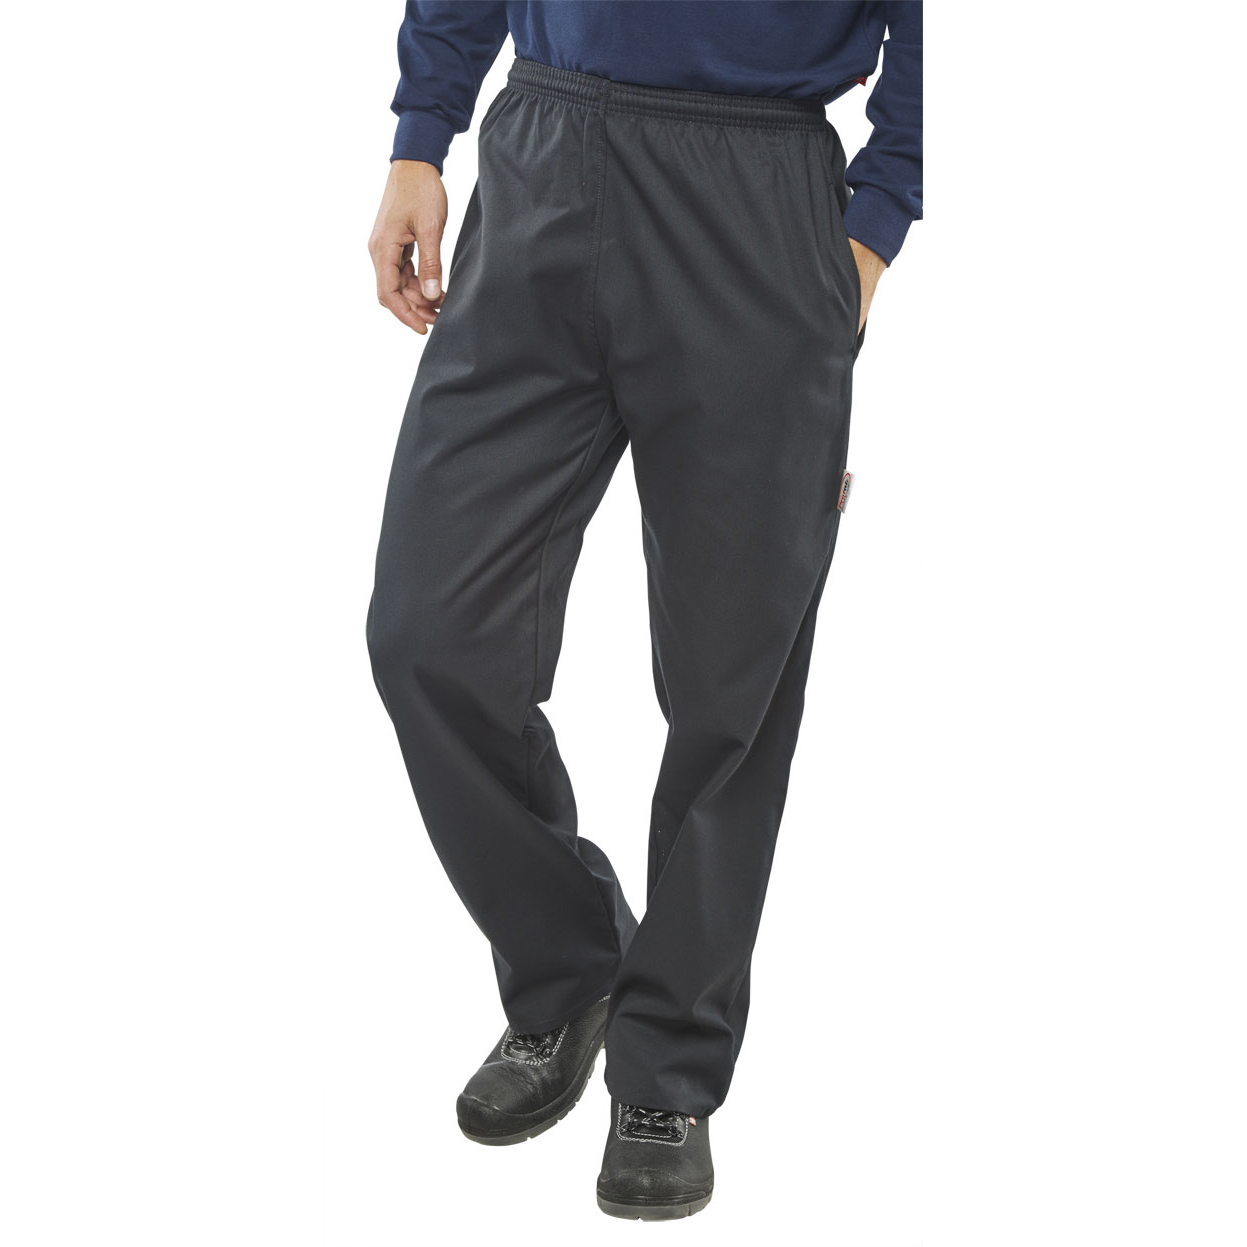 Fire Retardant / Flame Resistant Click Fire Retardant Protex Trousers M Navy Blue Ref CFRPTNM *Up to 3 Day Leadtime*